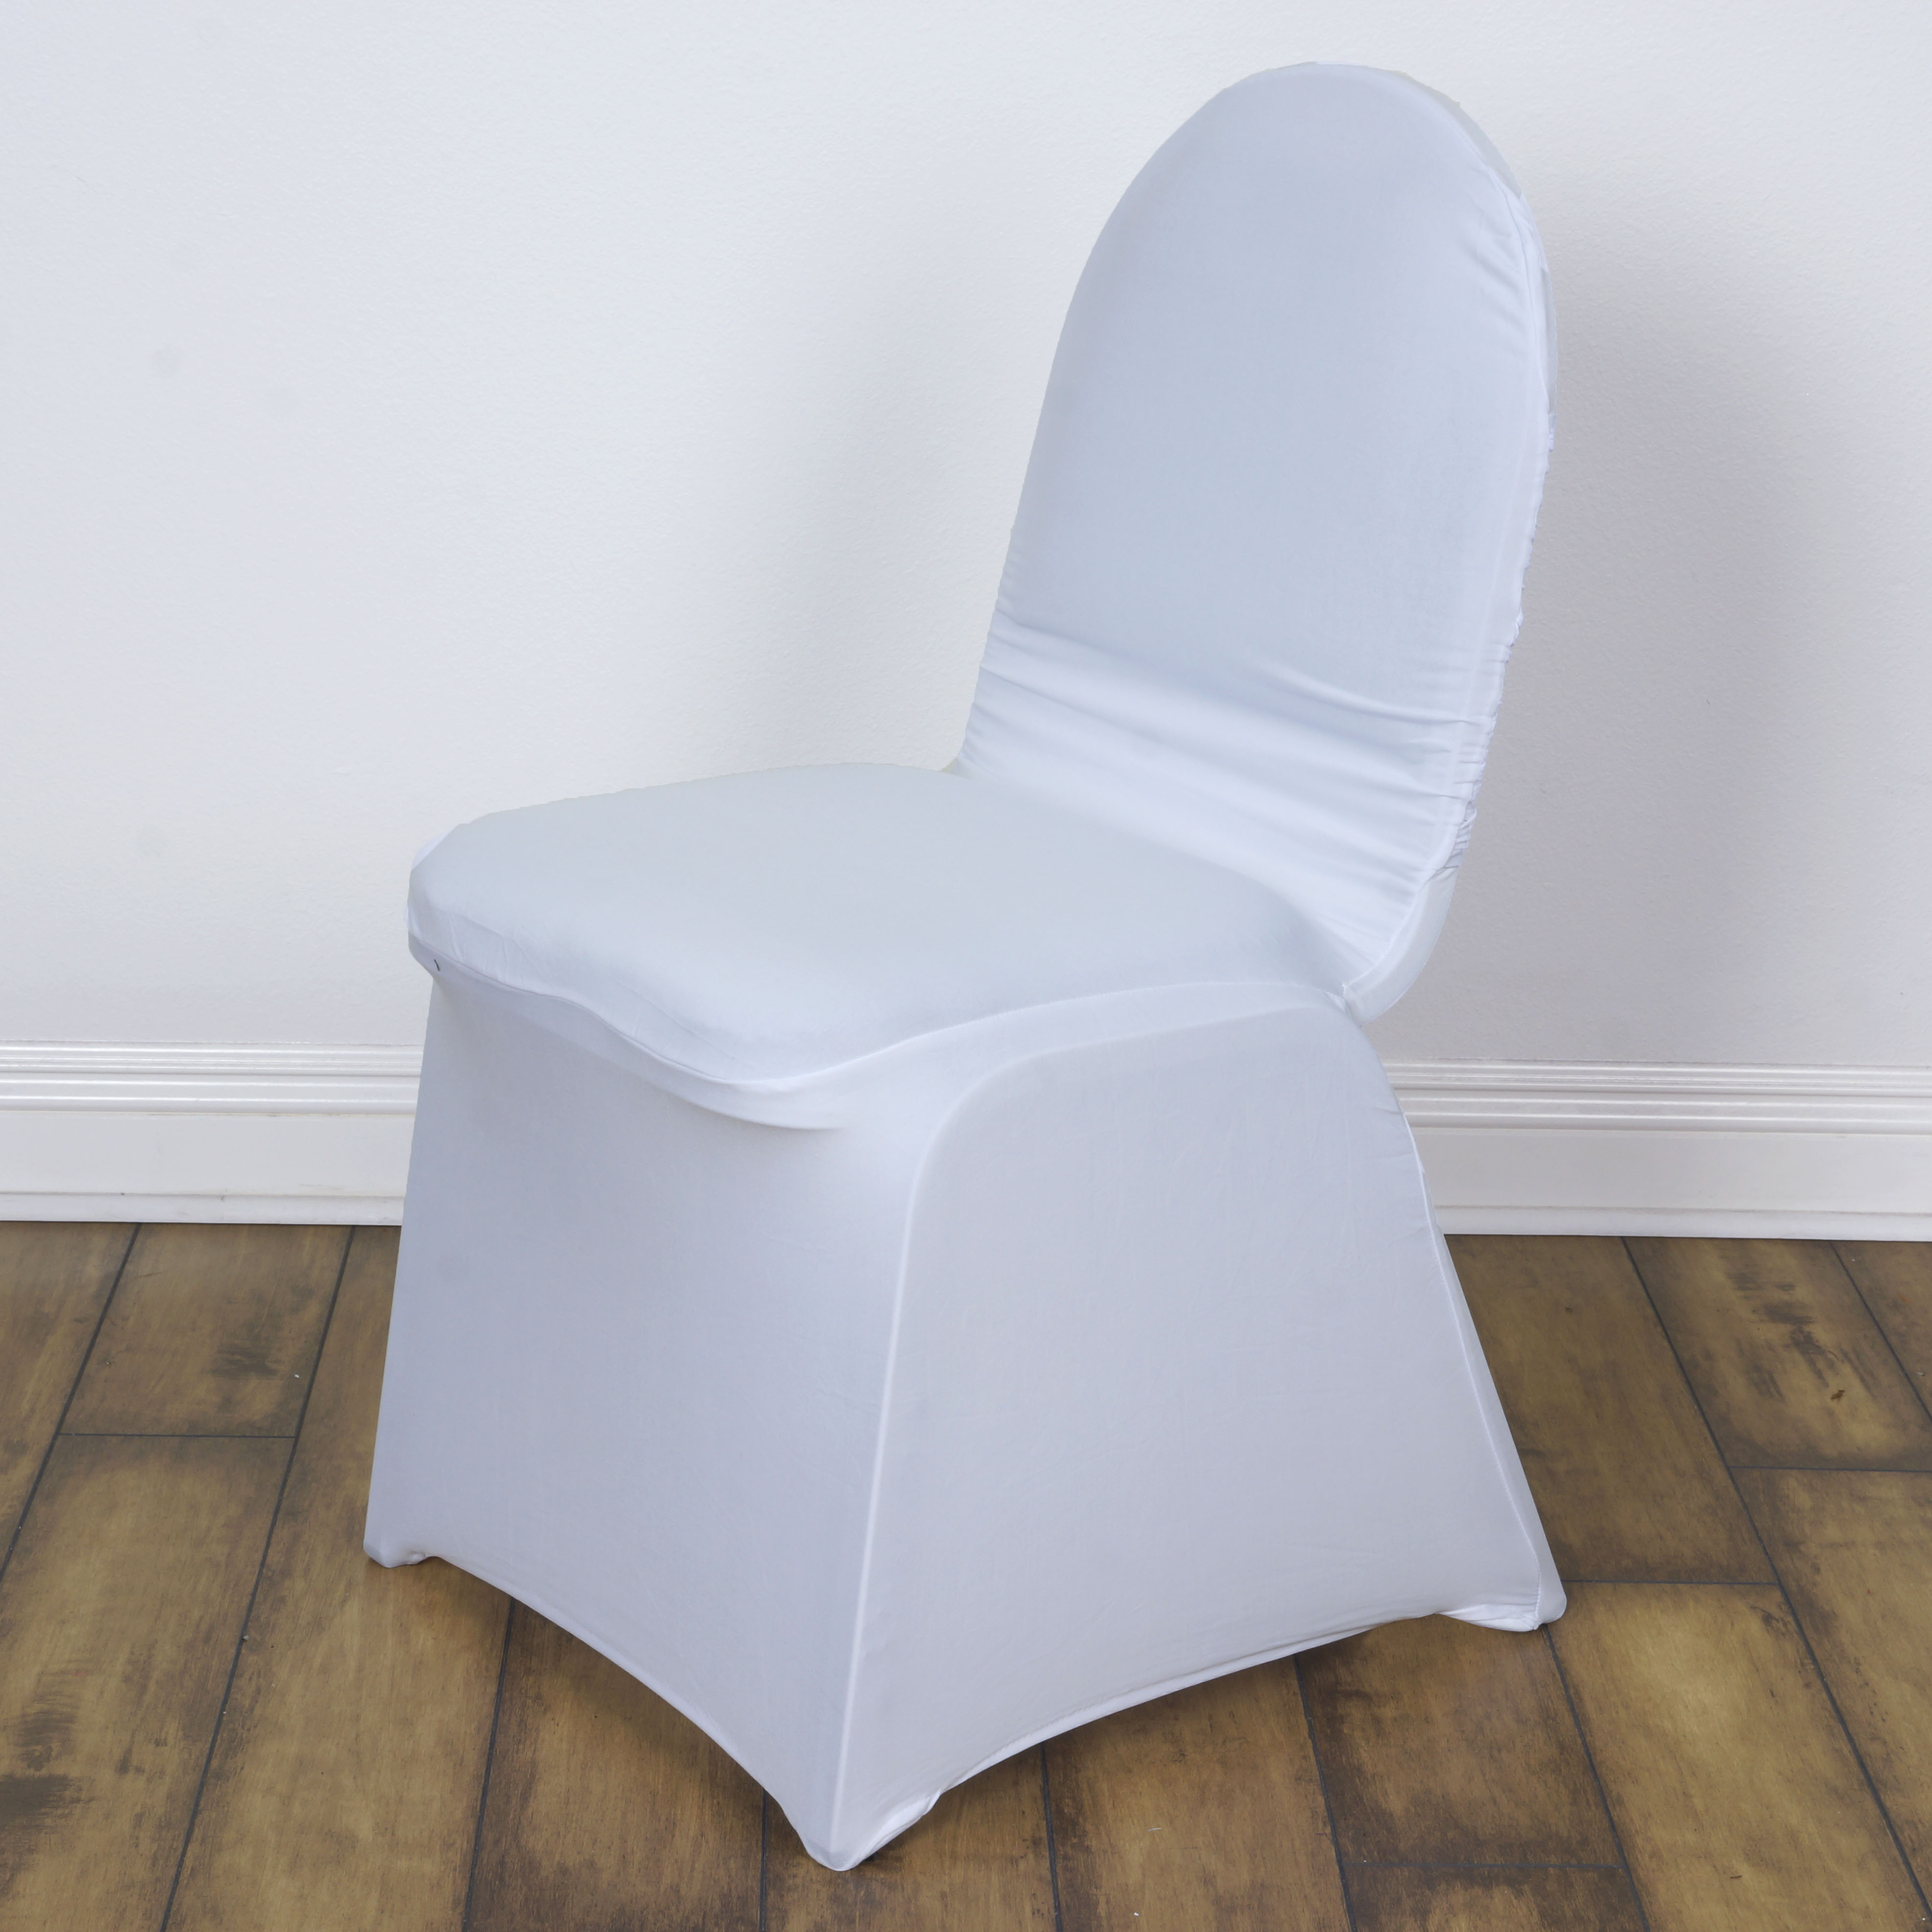 75 pcs madrid banquet chair covers with crisscross design